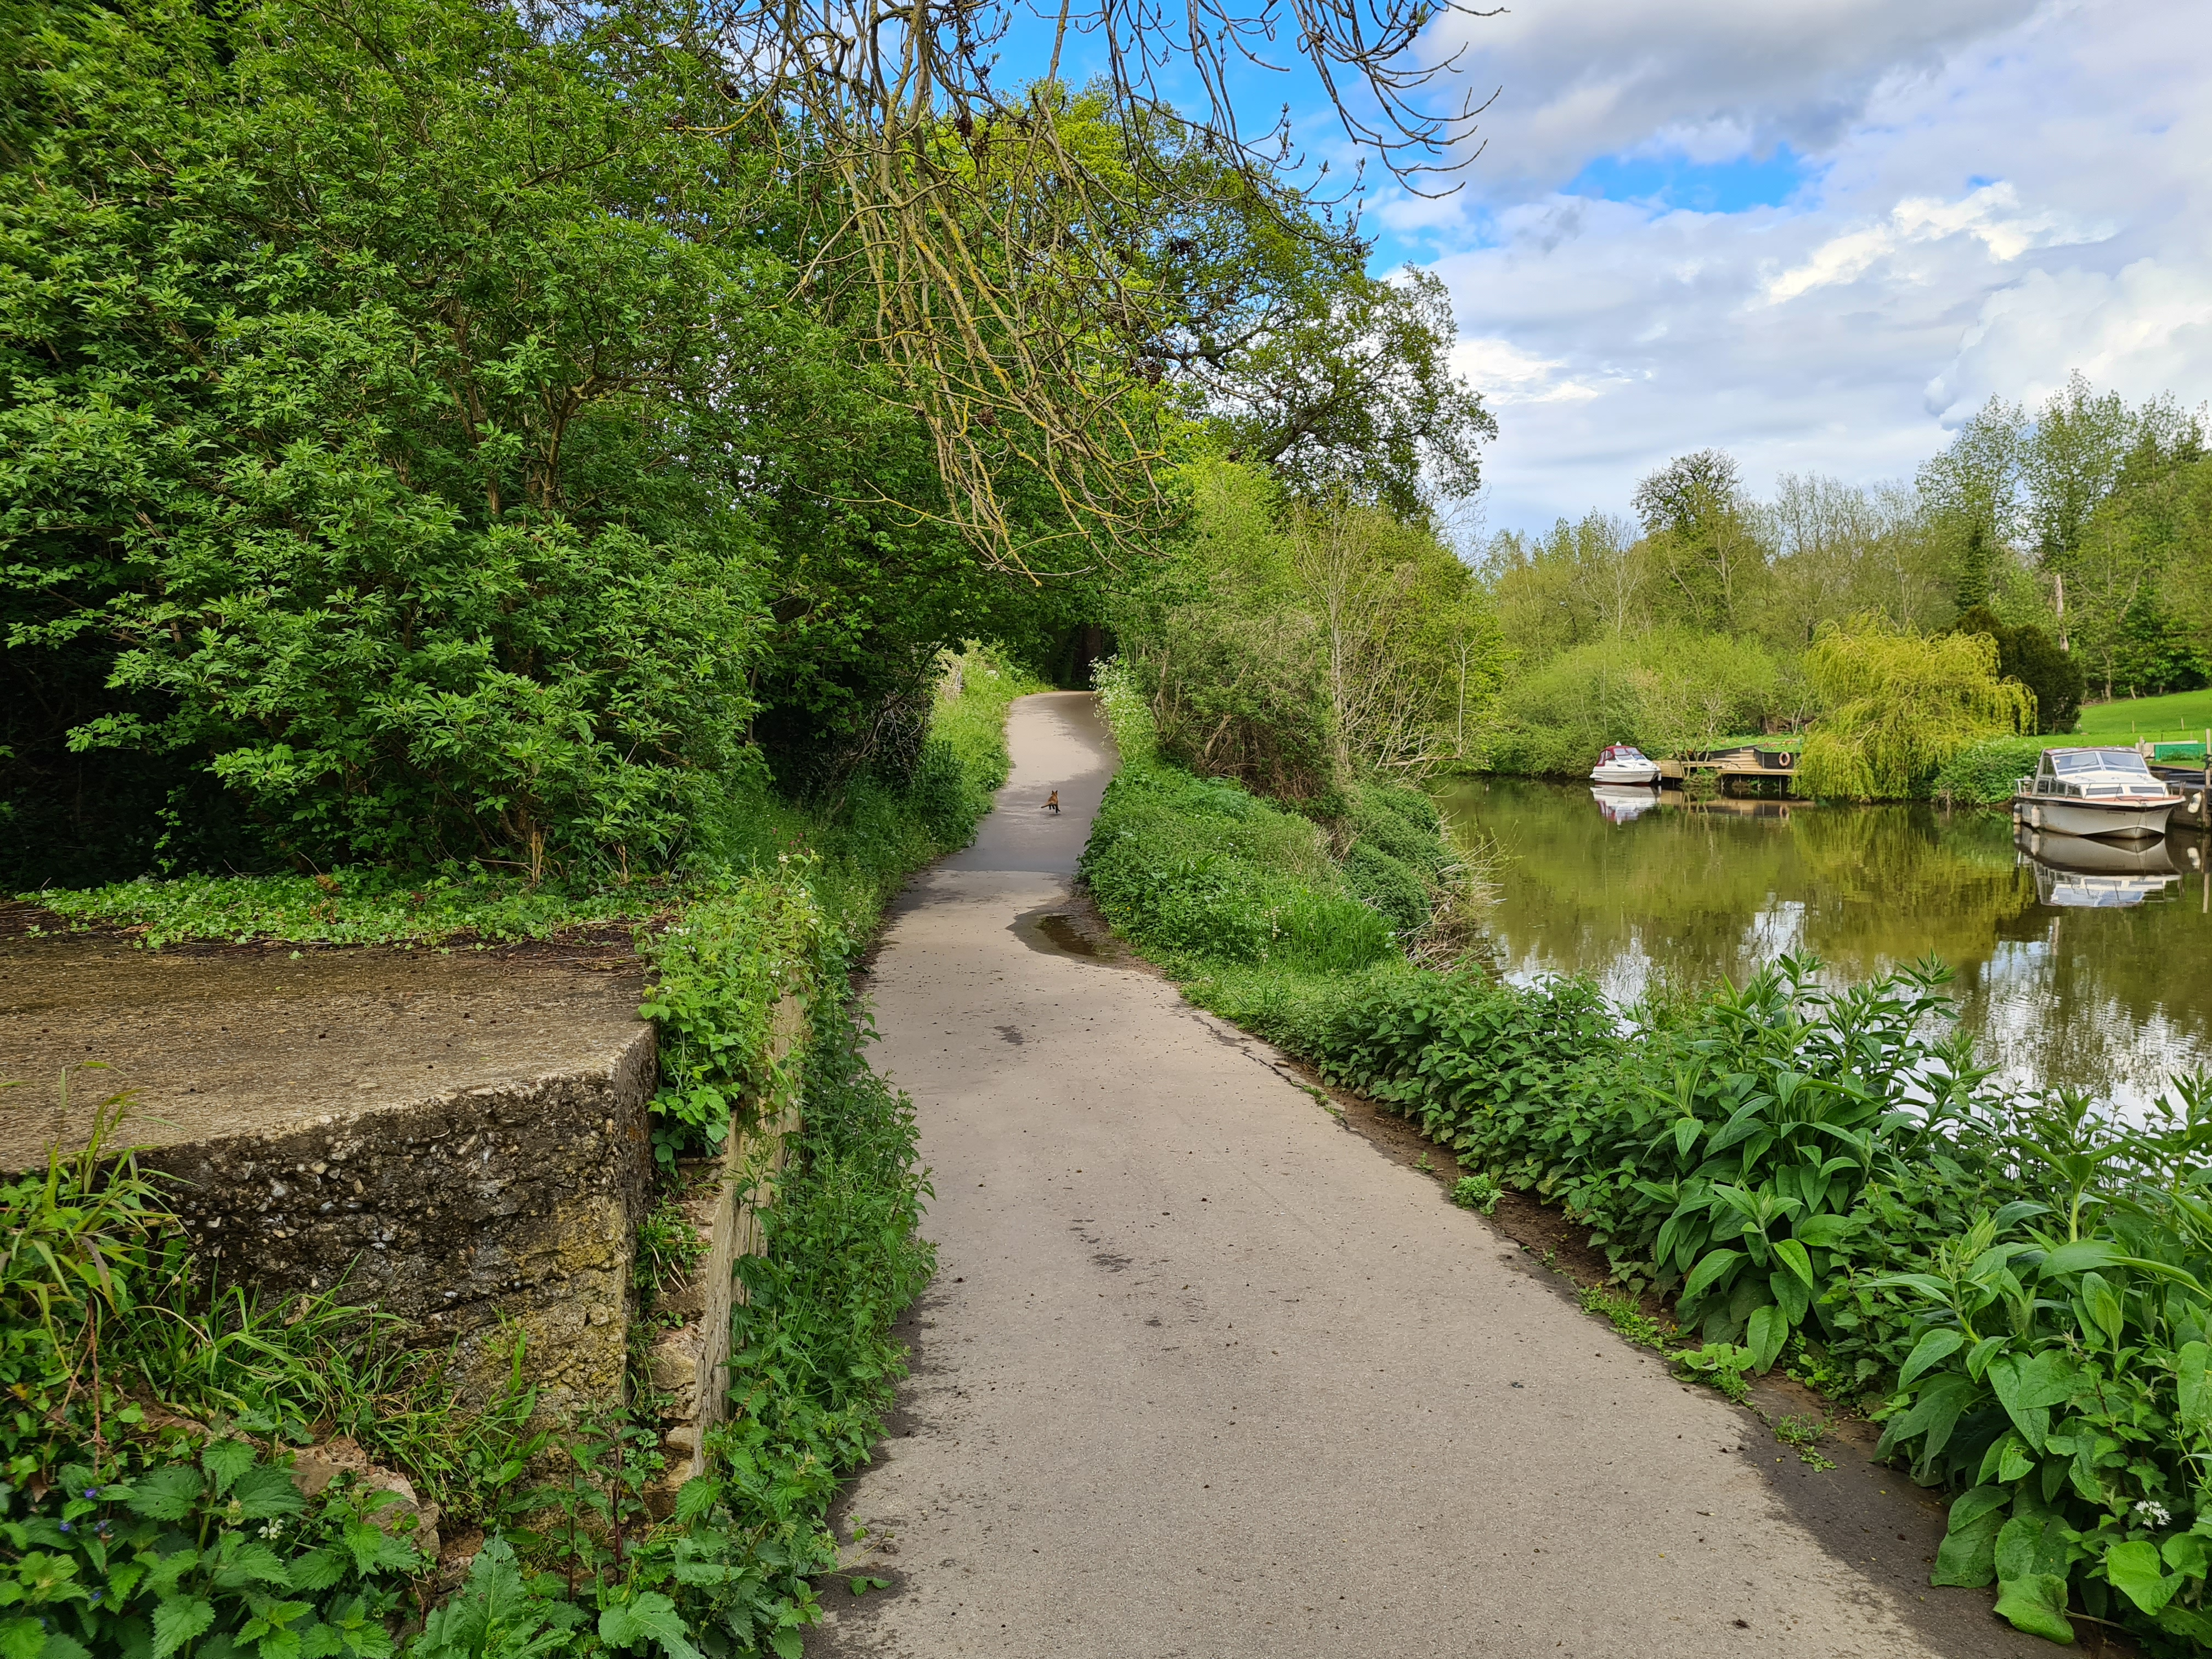 Approaching Maidstone, a fox leads the way